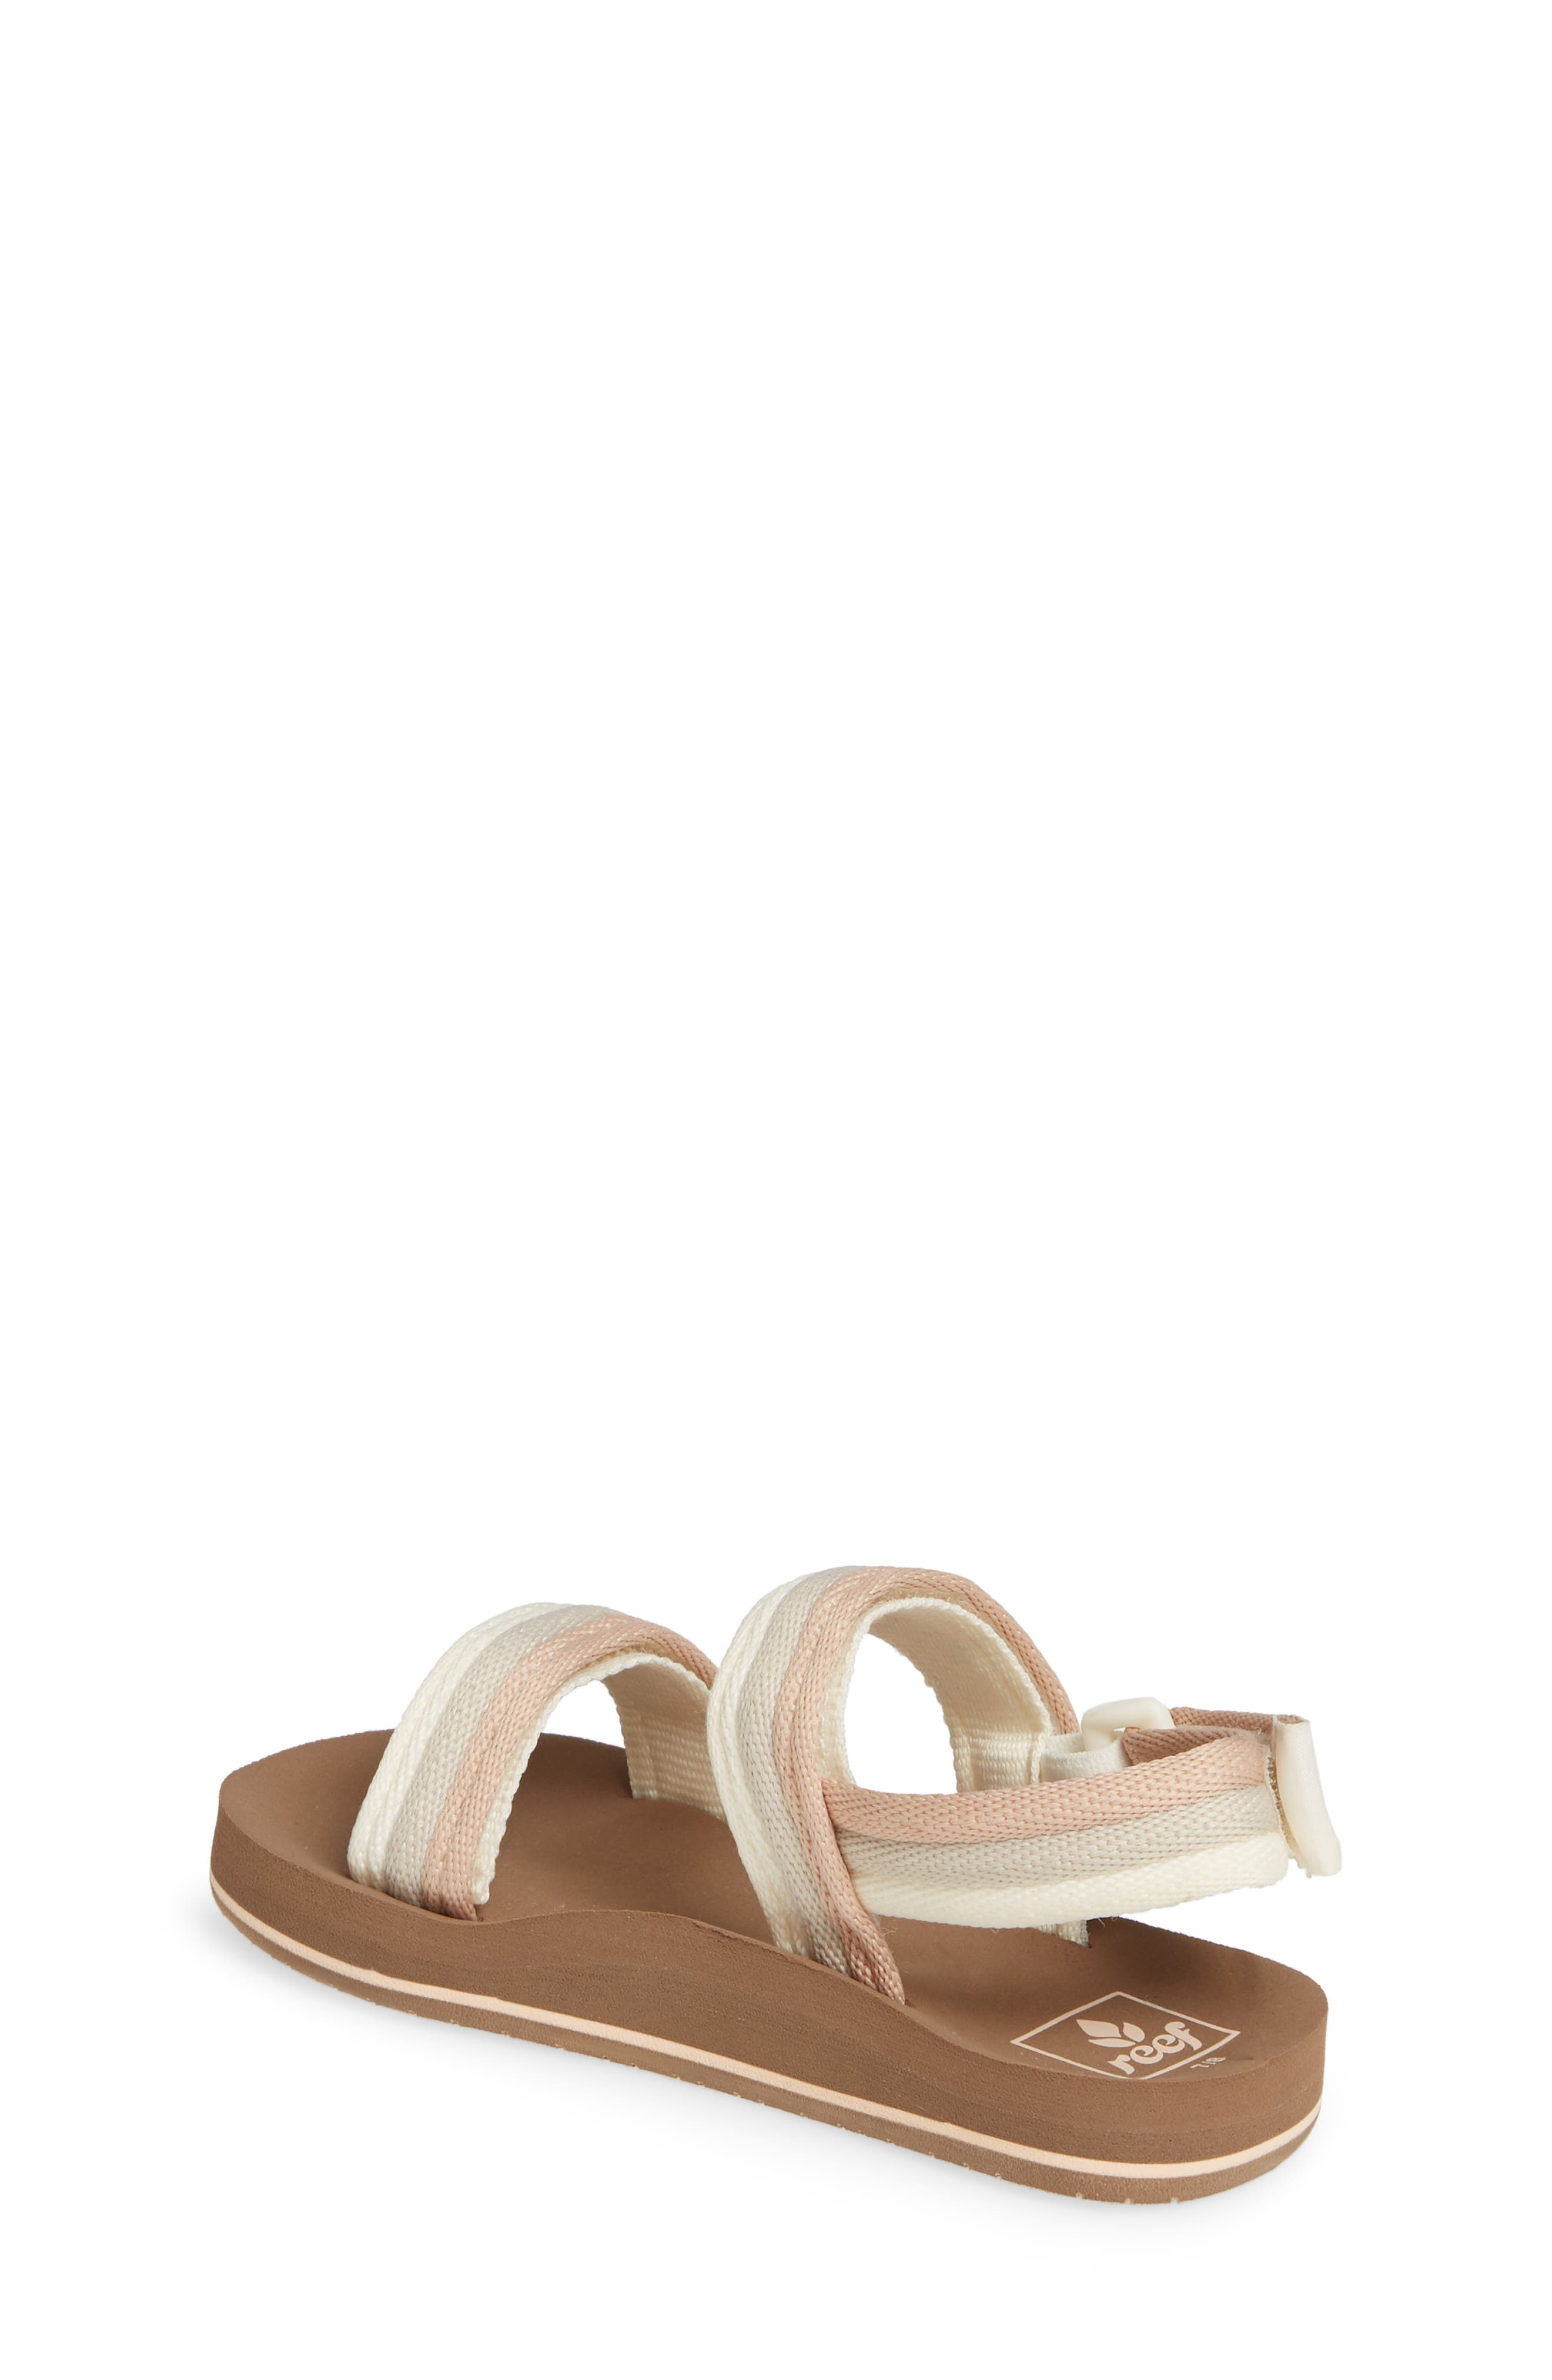 REEF, Little Ahi Convertible Sandal, Alternate thumbnail 2, color, SANDY TOES